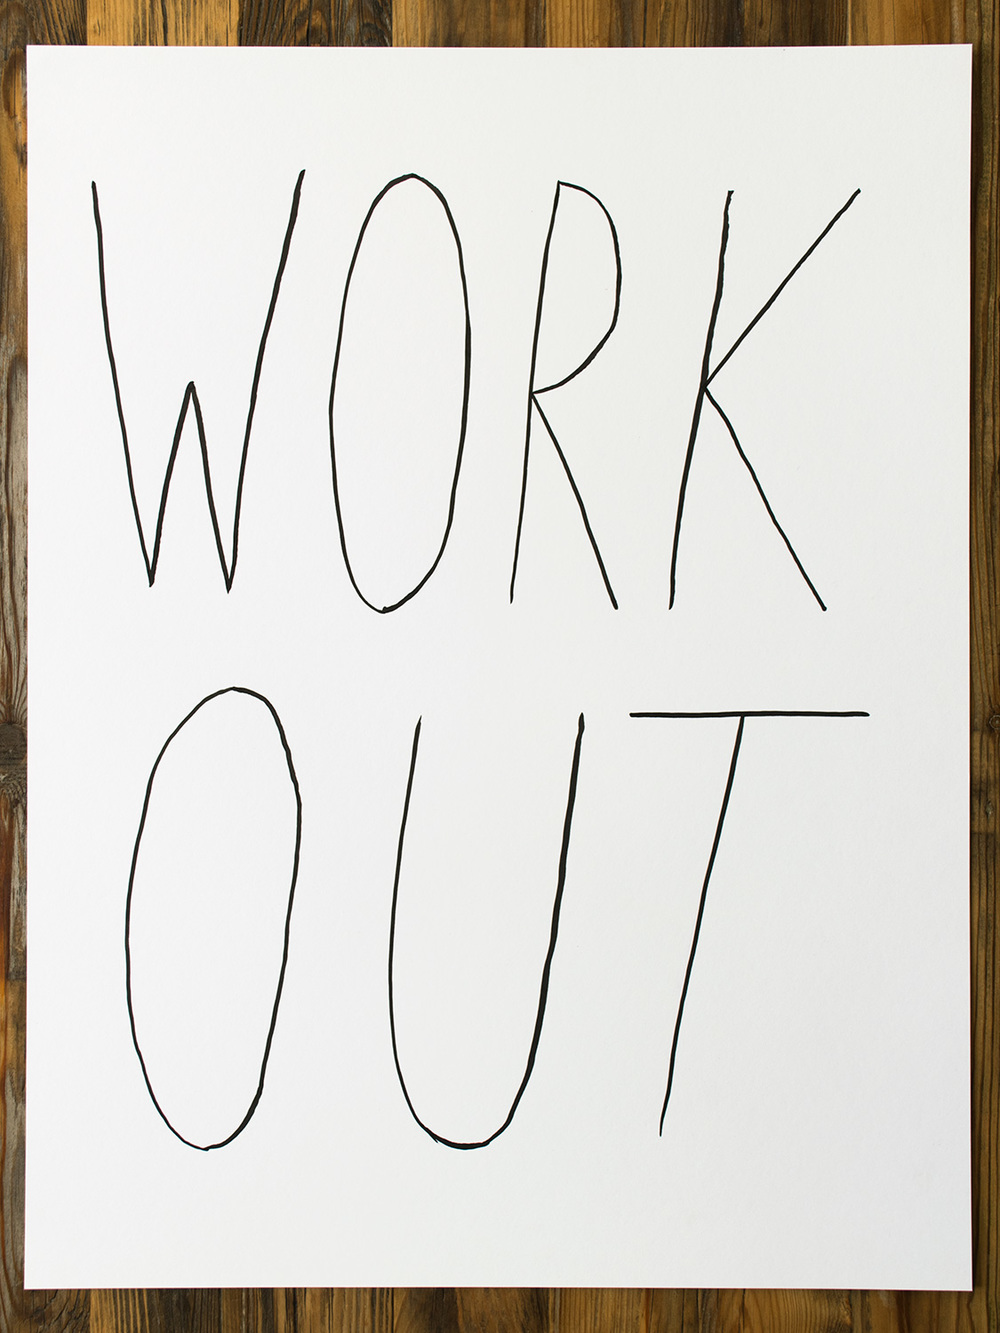 work_out-1500x1125.jpg